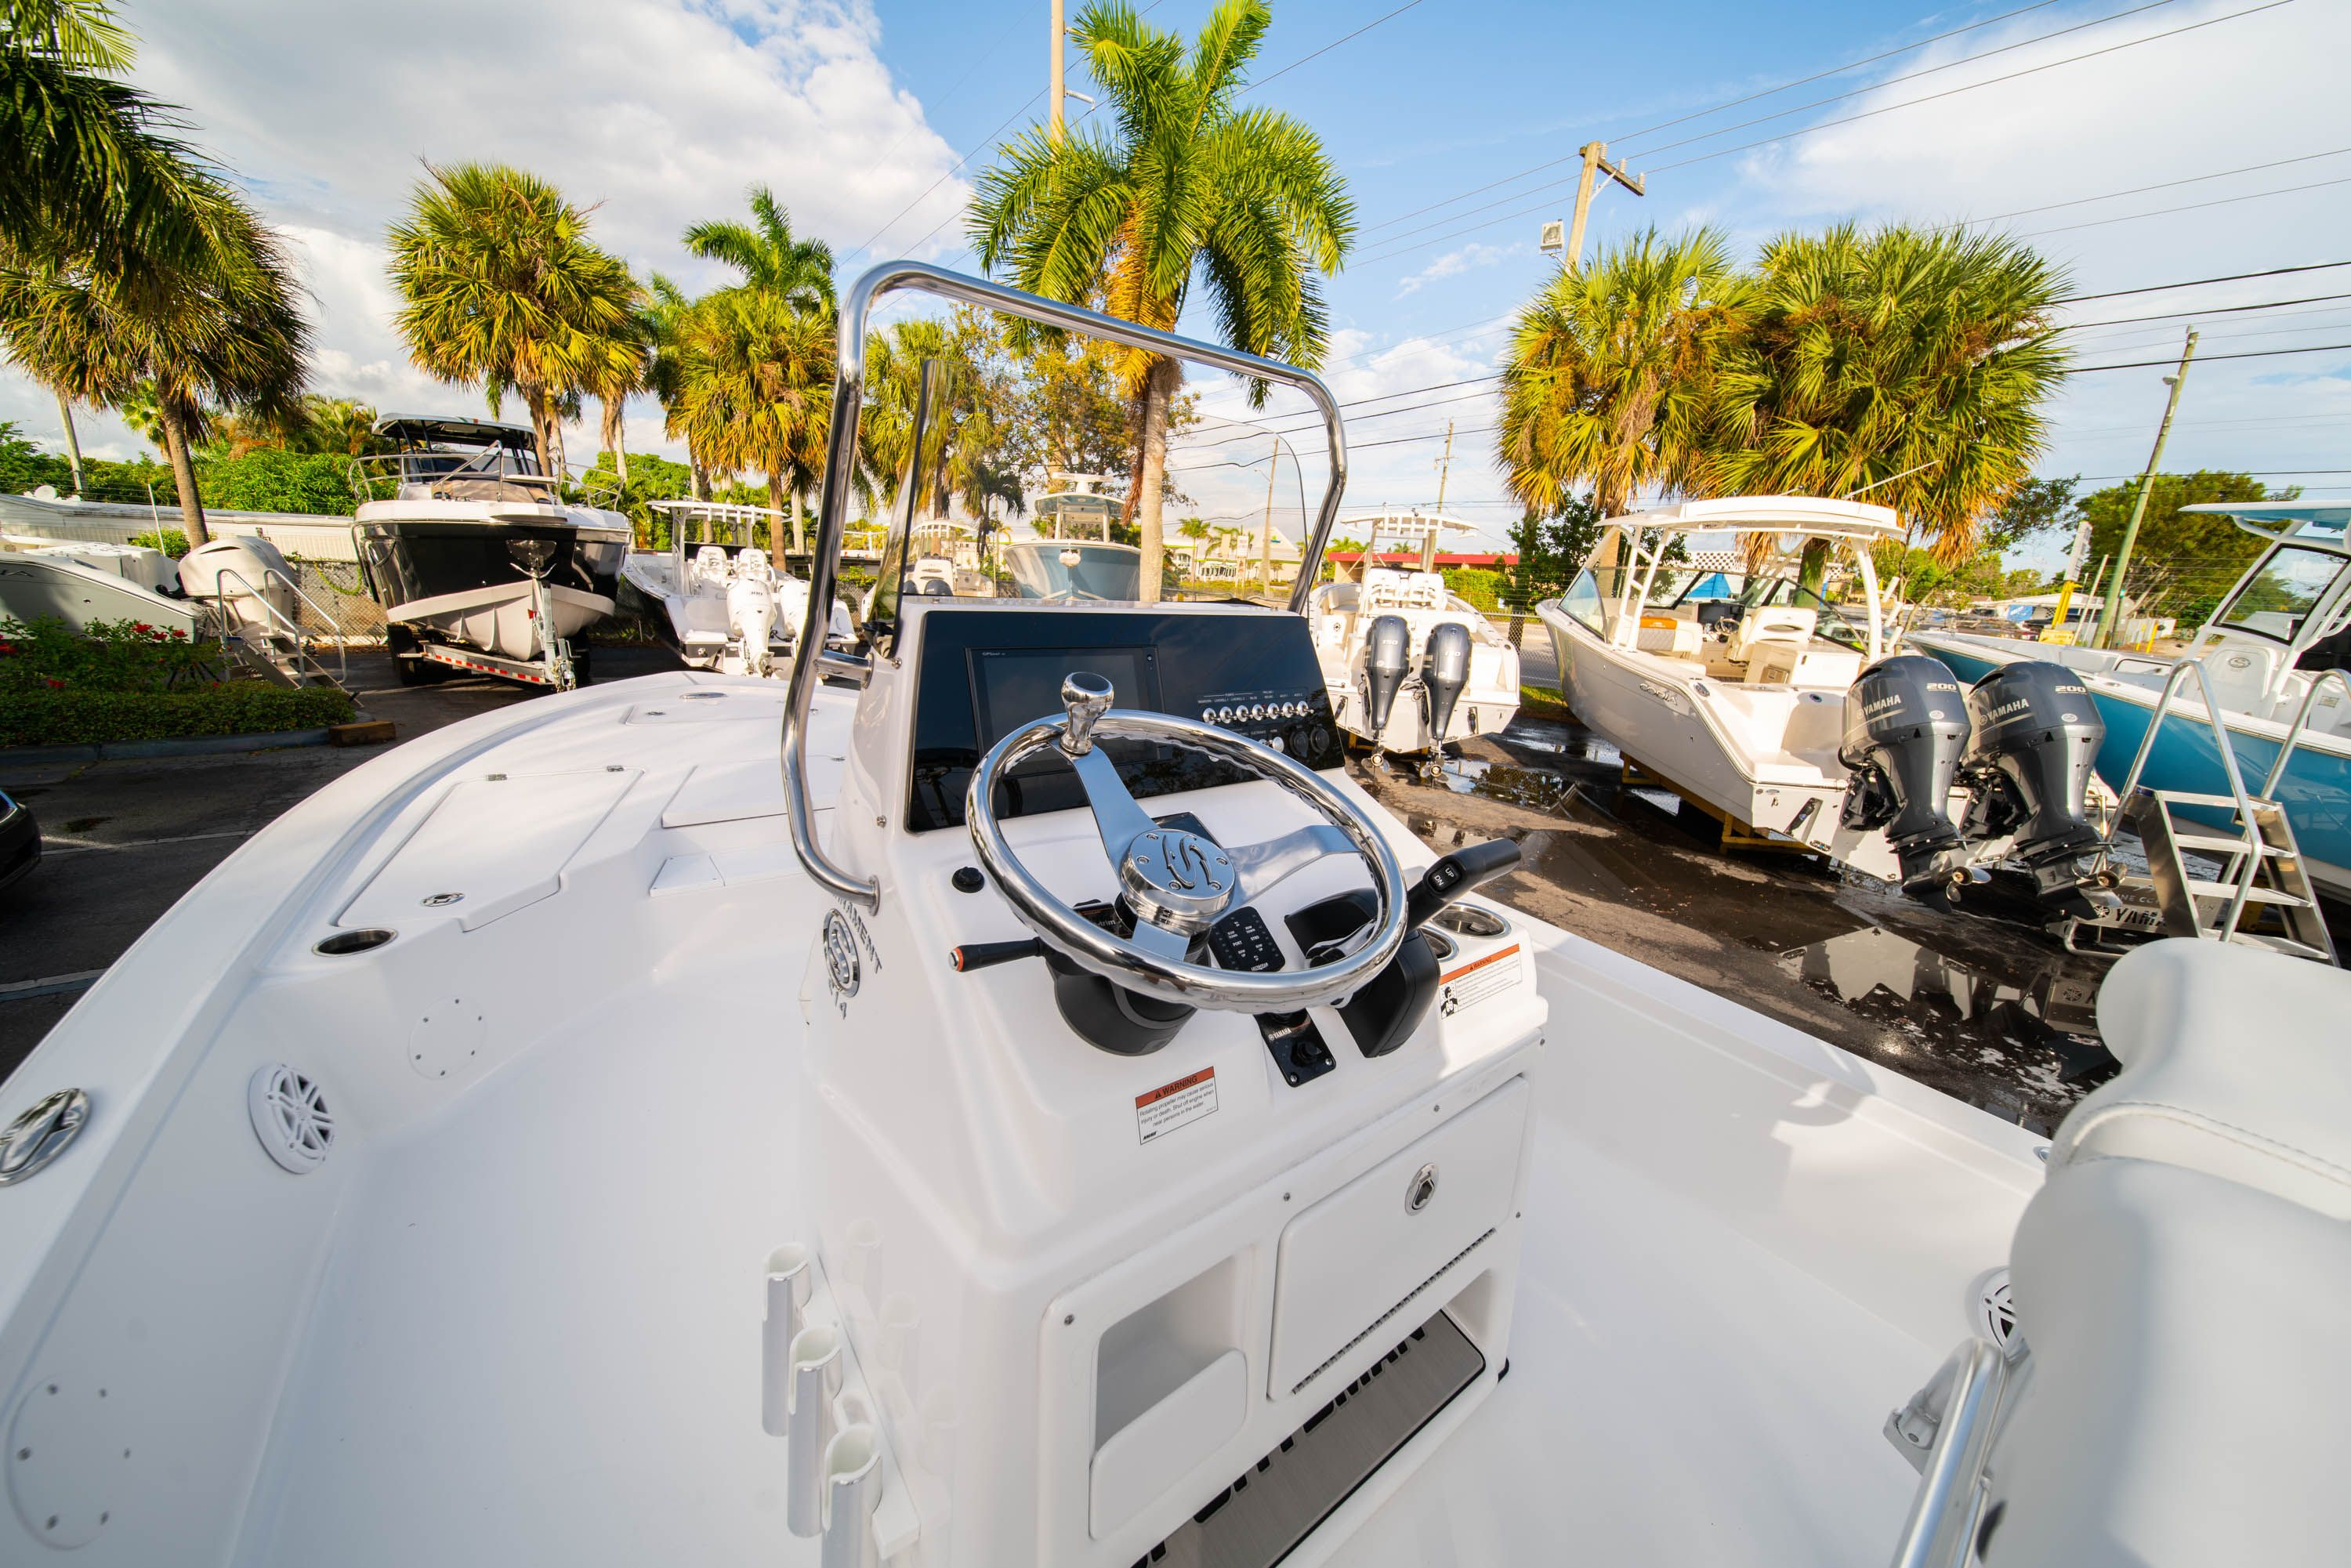 Thumbnail 21 for New 2020 Sportsman Tournament 214 Bay Boat boat for sale in West Palm Beach, FL